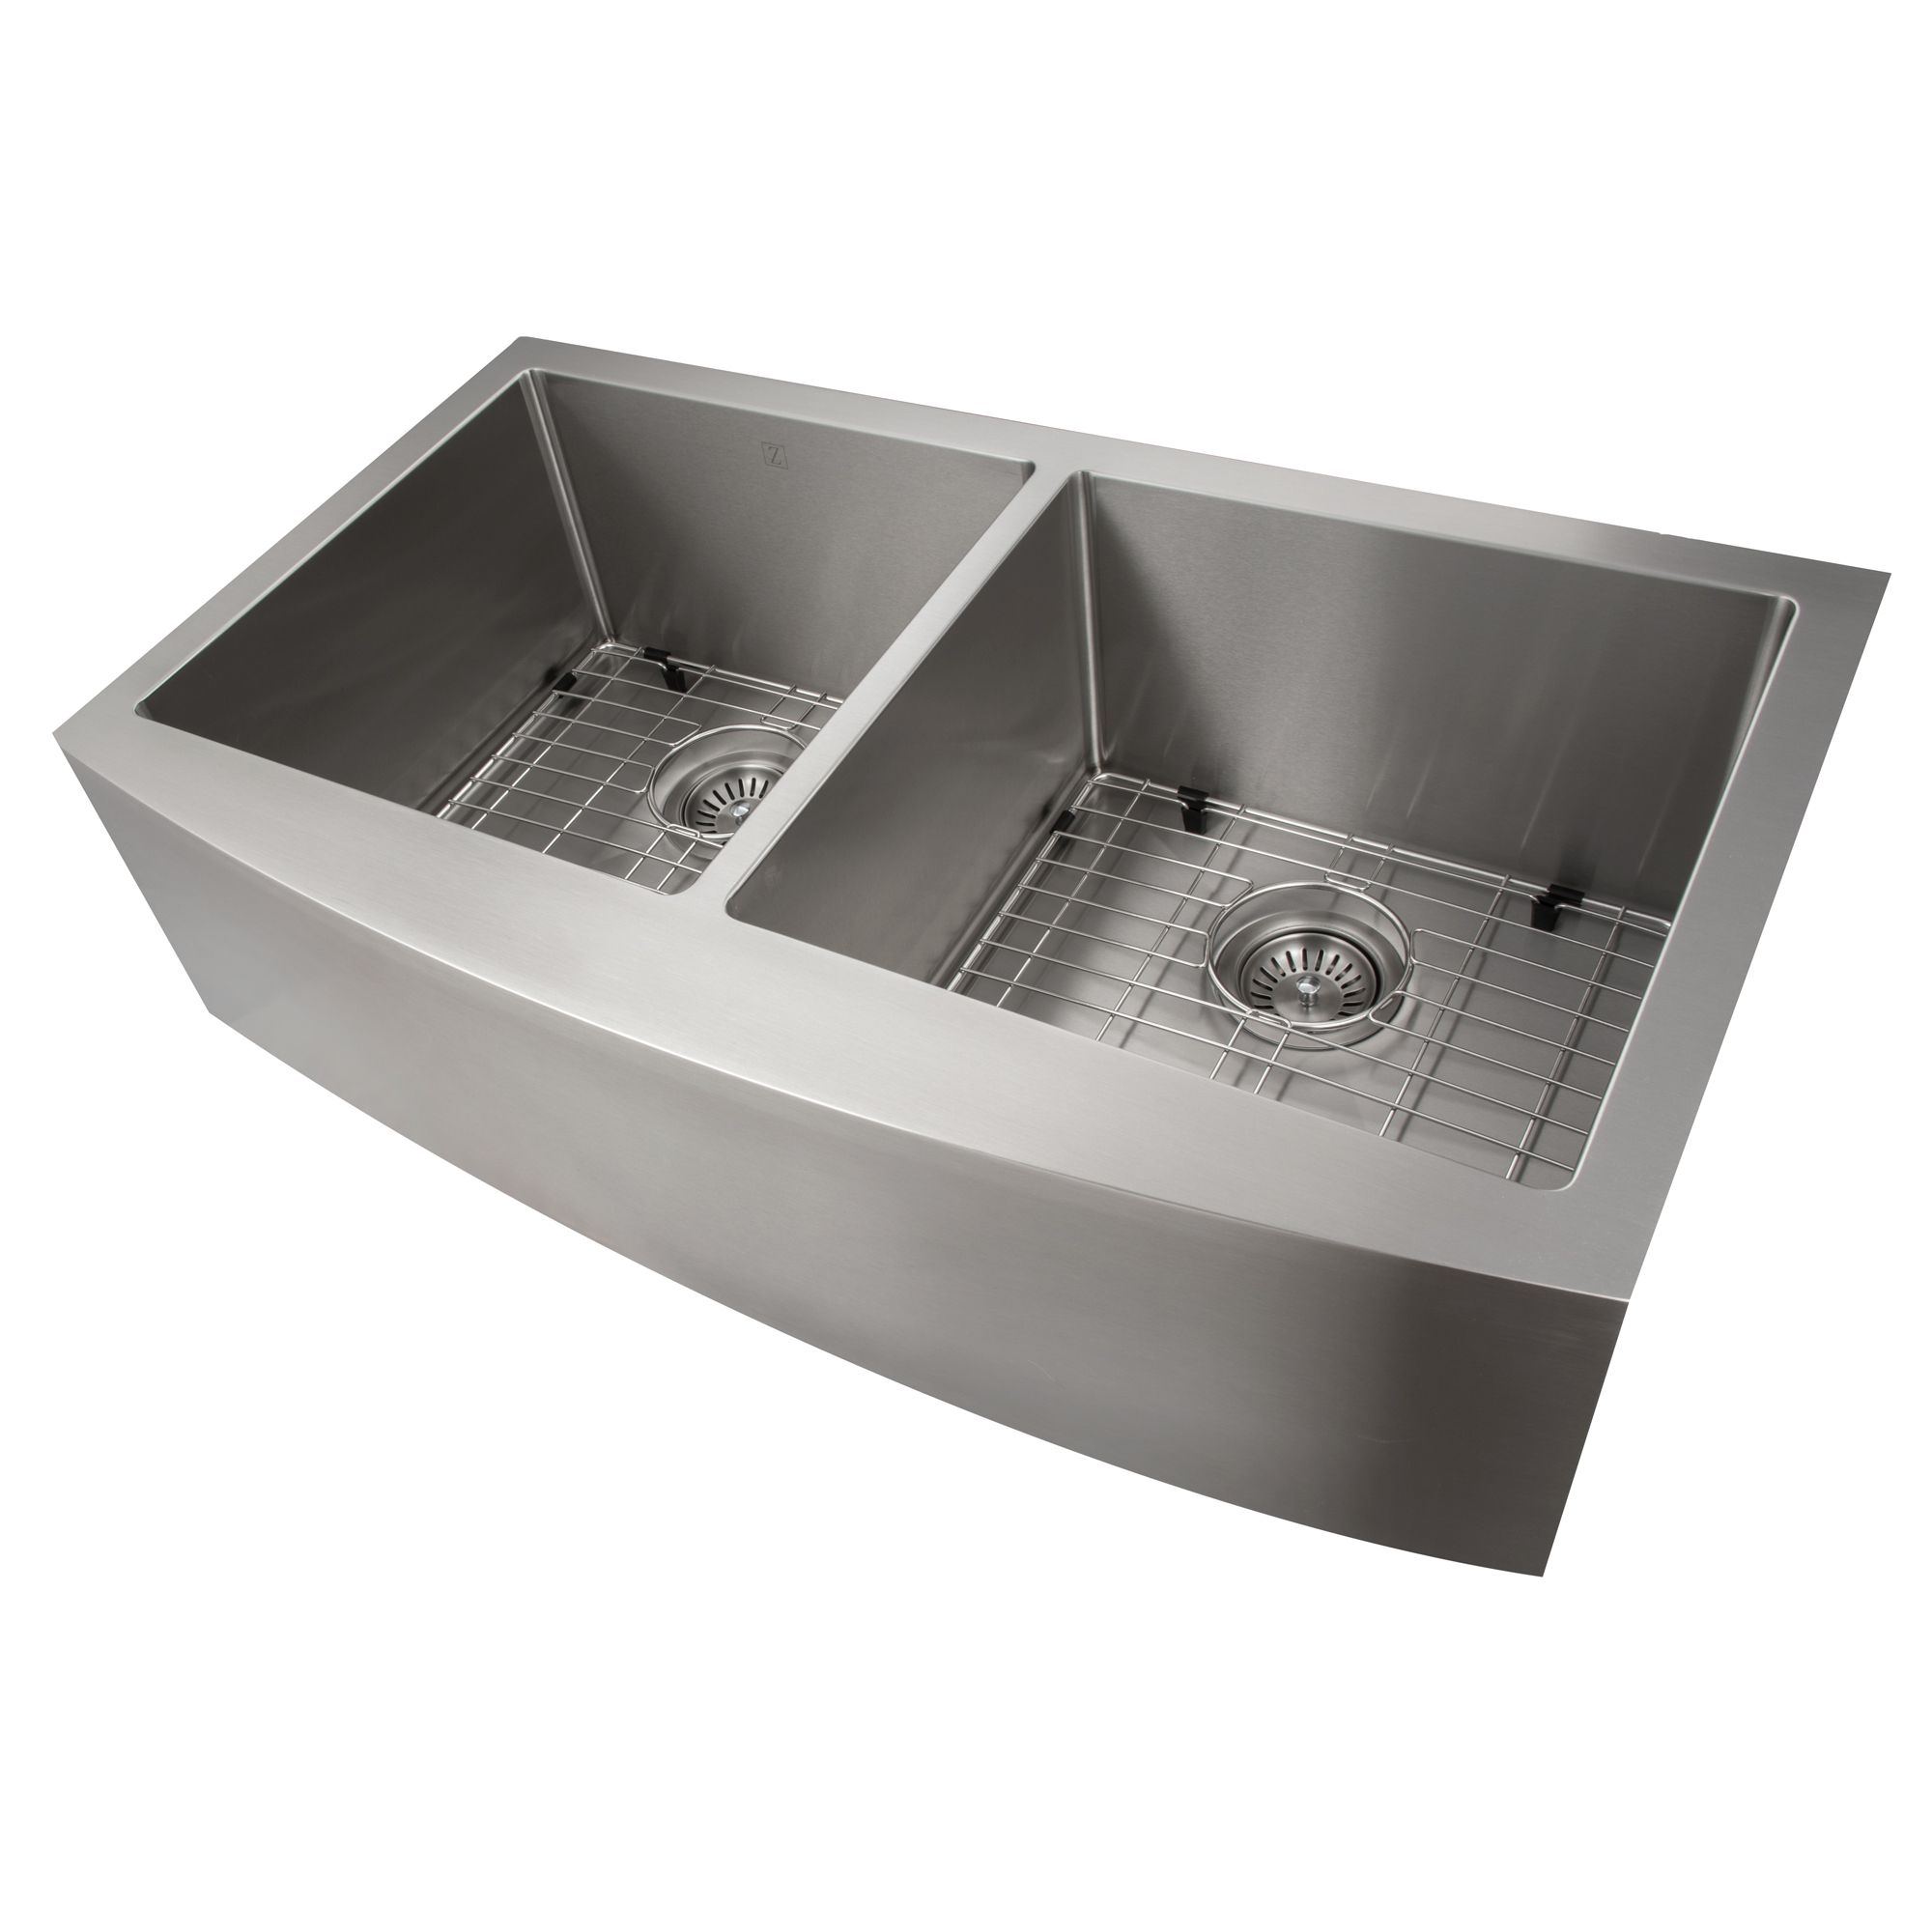 Zline Farmhouse Series 36 Inch Undermount Double Bowl Apron Sink